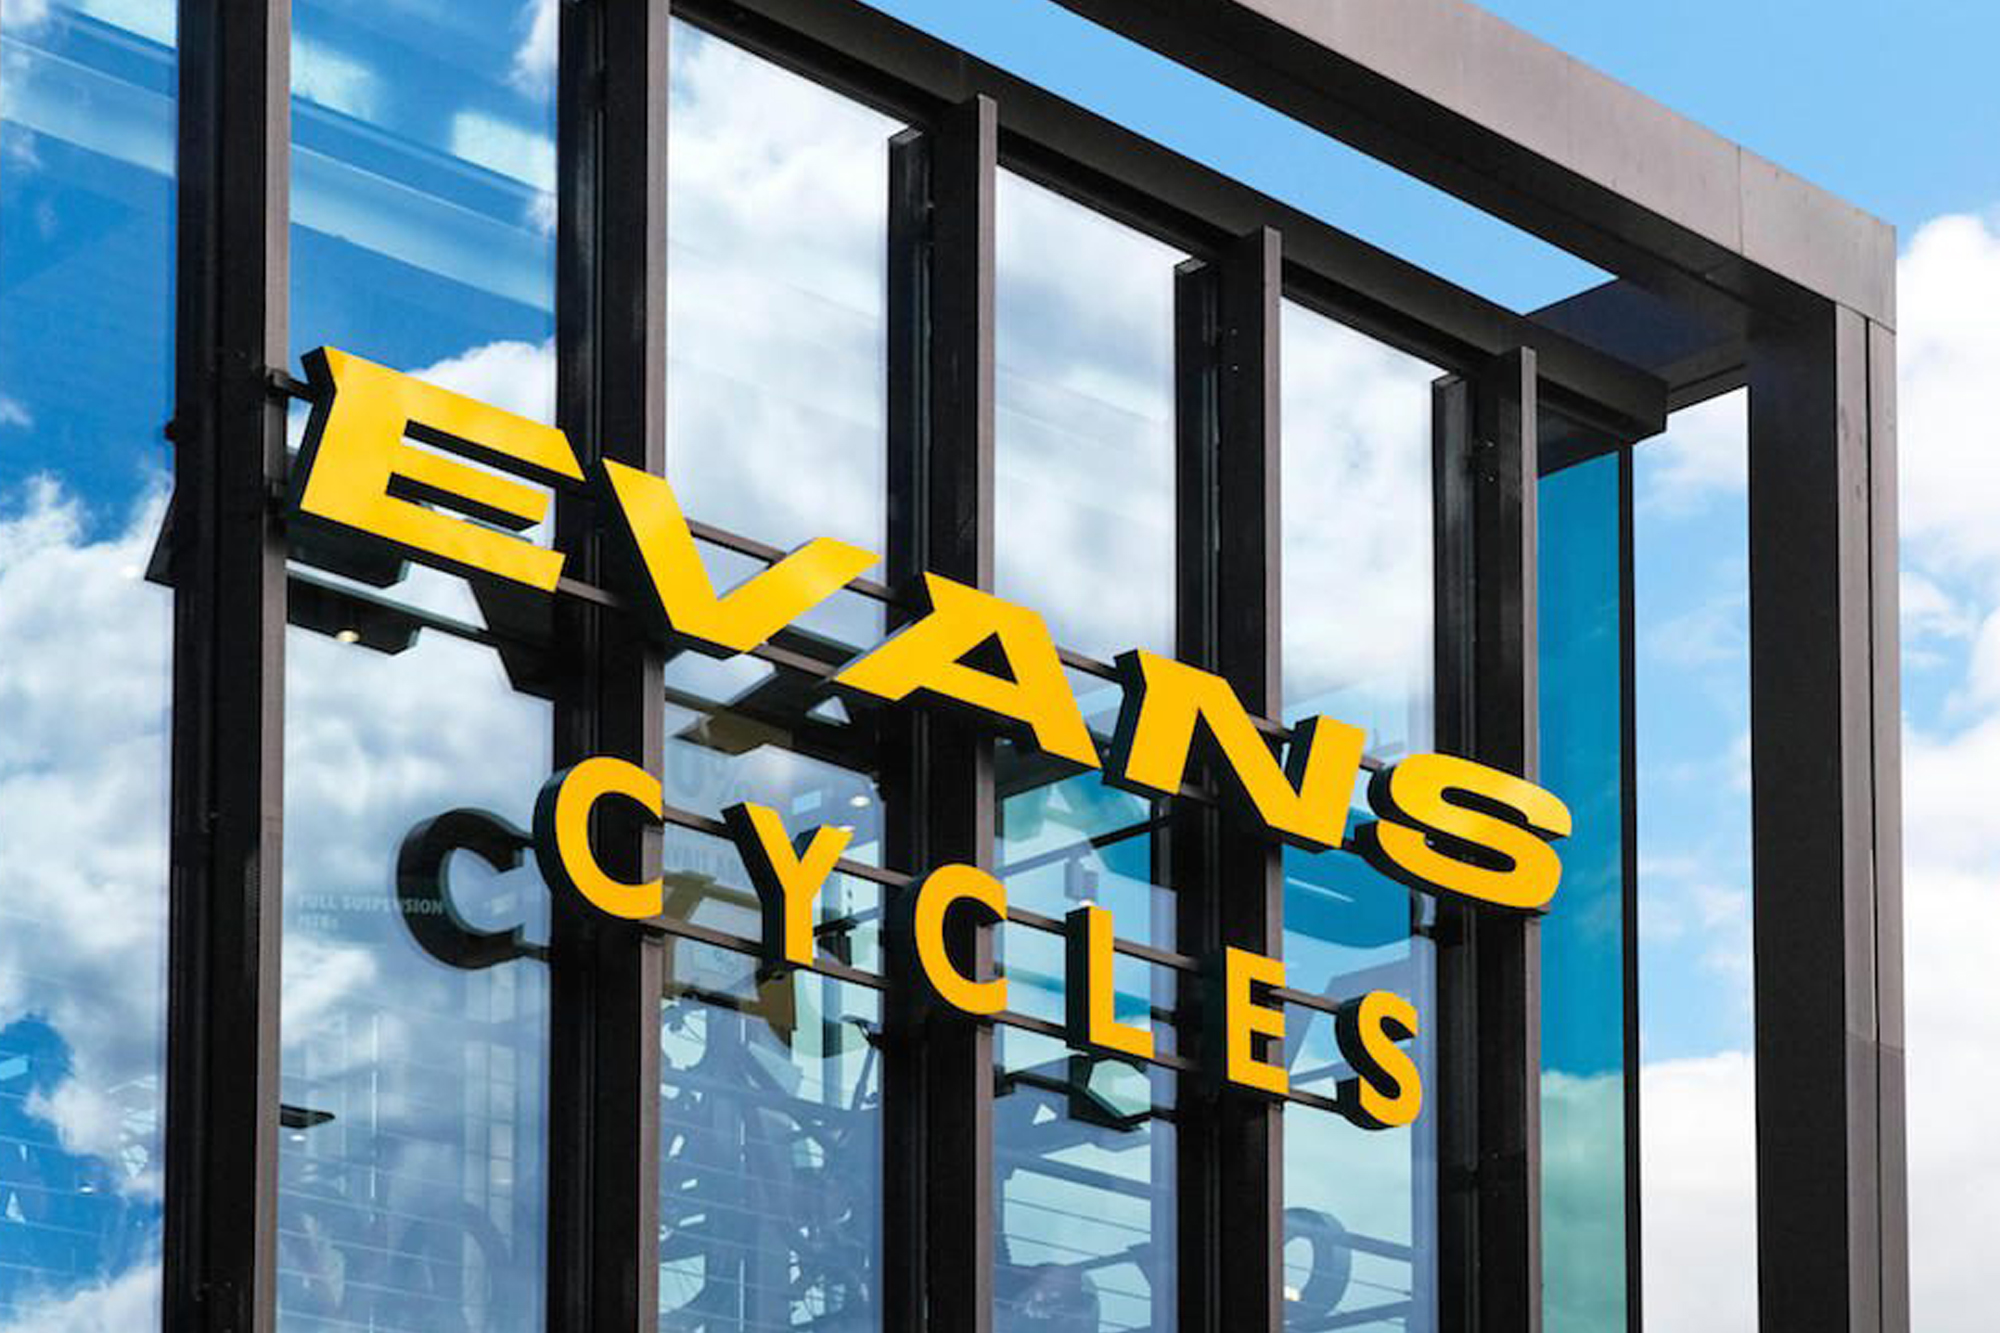 Evans Cycles launches Black Friday deals: savings on Specialized Allez and Garmin 1030